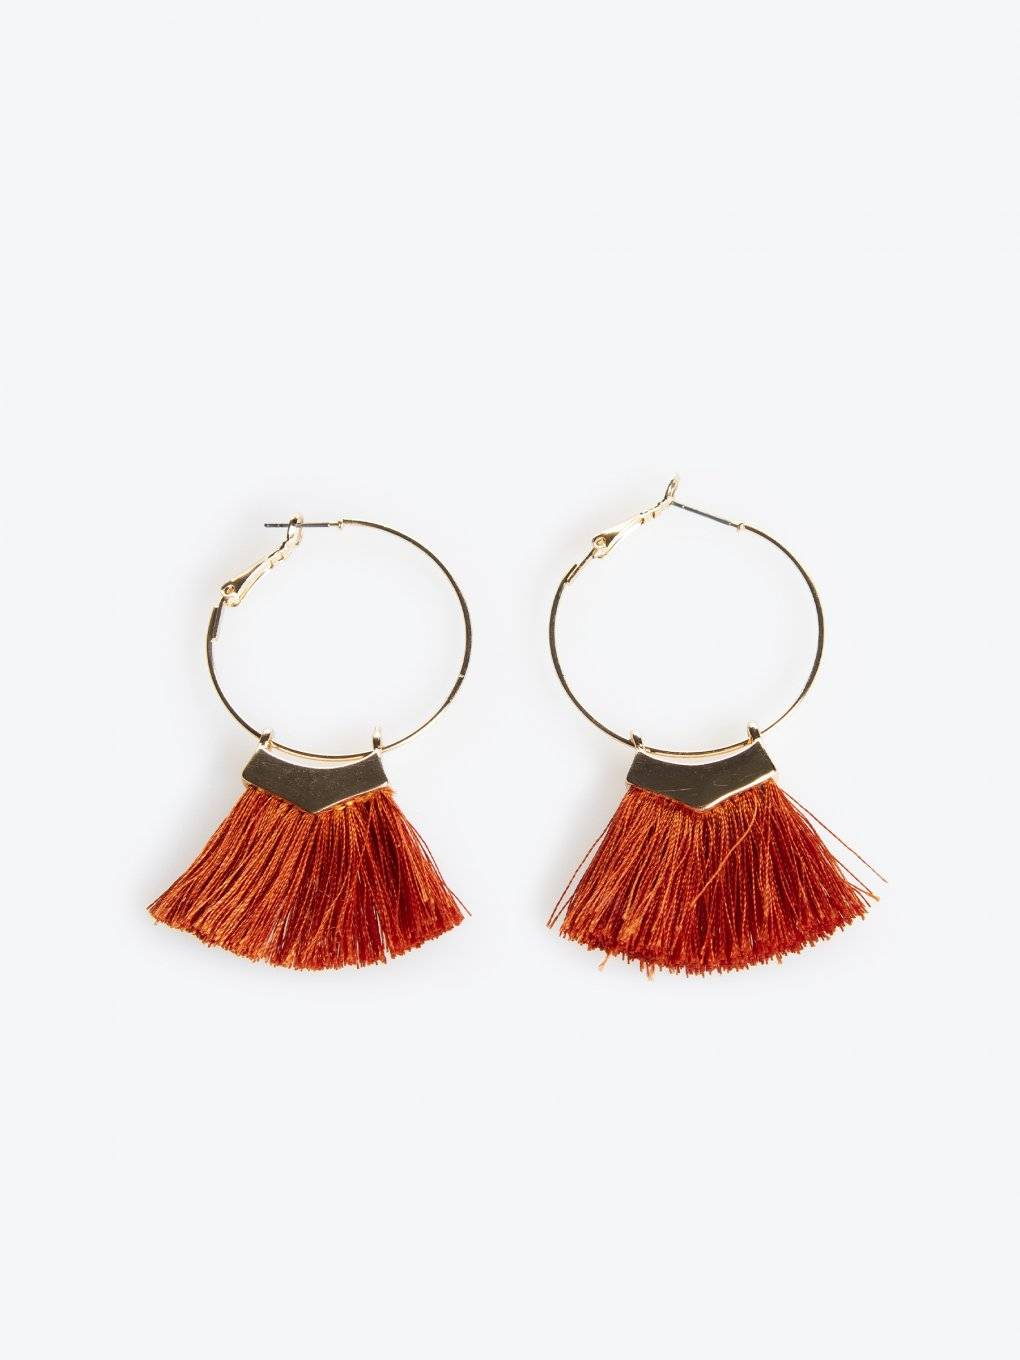 Hoop earrings with tasses